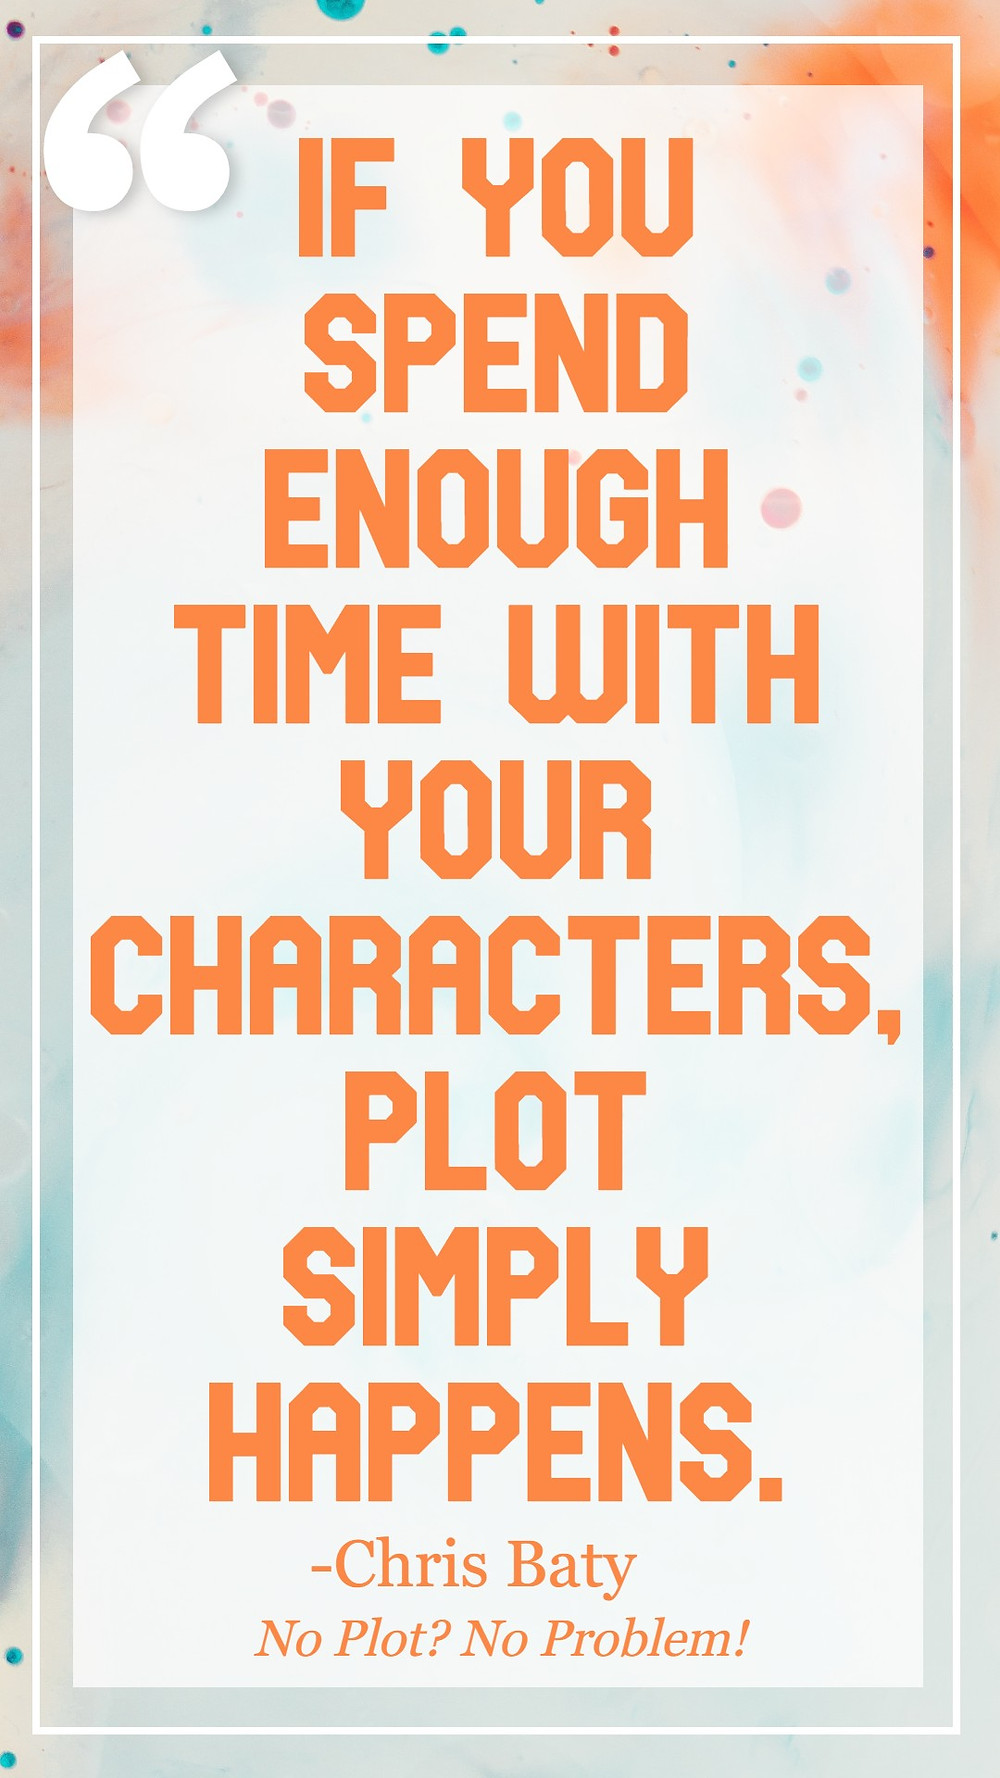 Image text: If you spend enough time with your characters, plot simply happens. - Chris Baty. No Plot? No Problem!